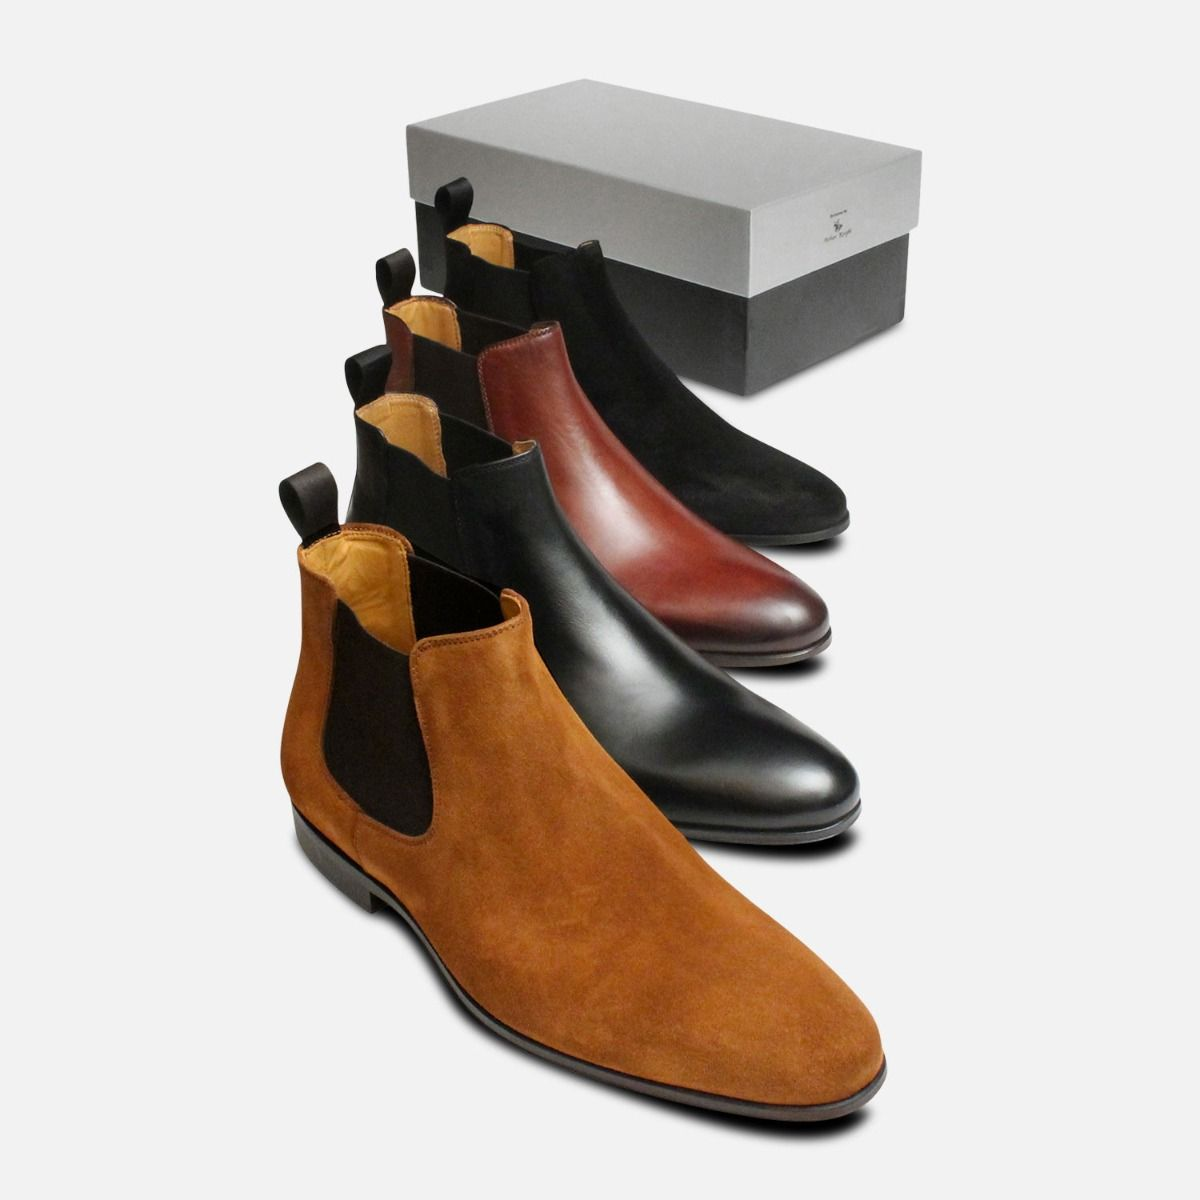 Beatle Boots in Black Suede for Men by Arthur Knight